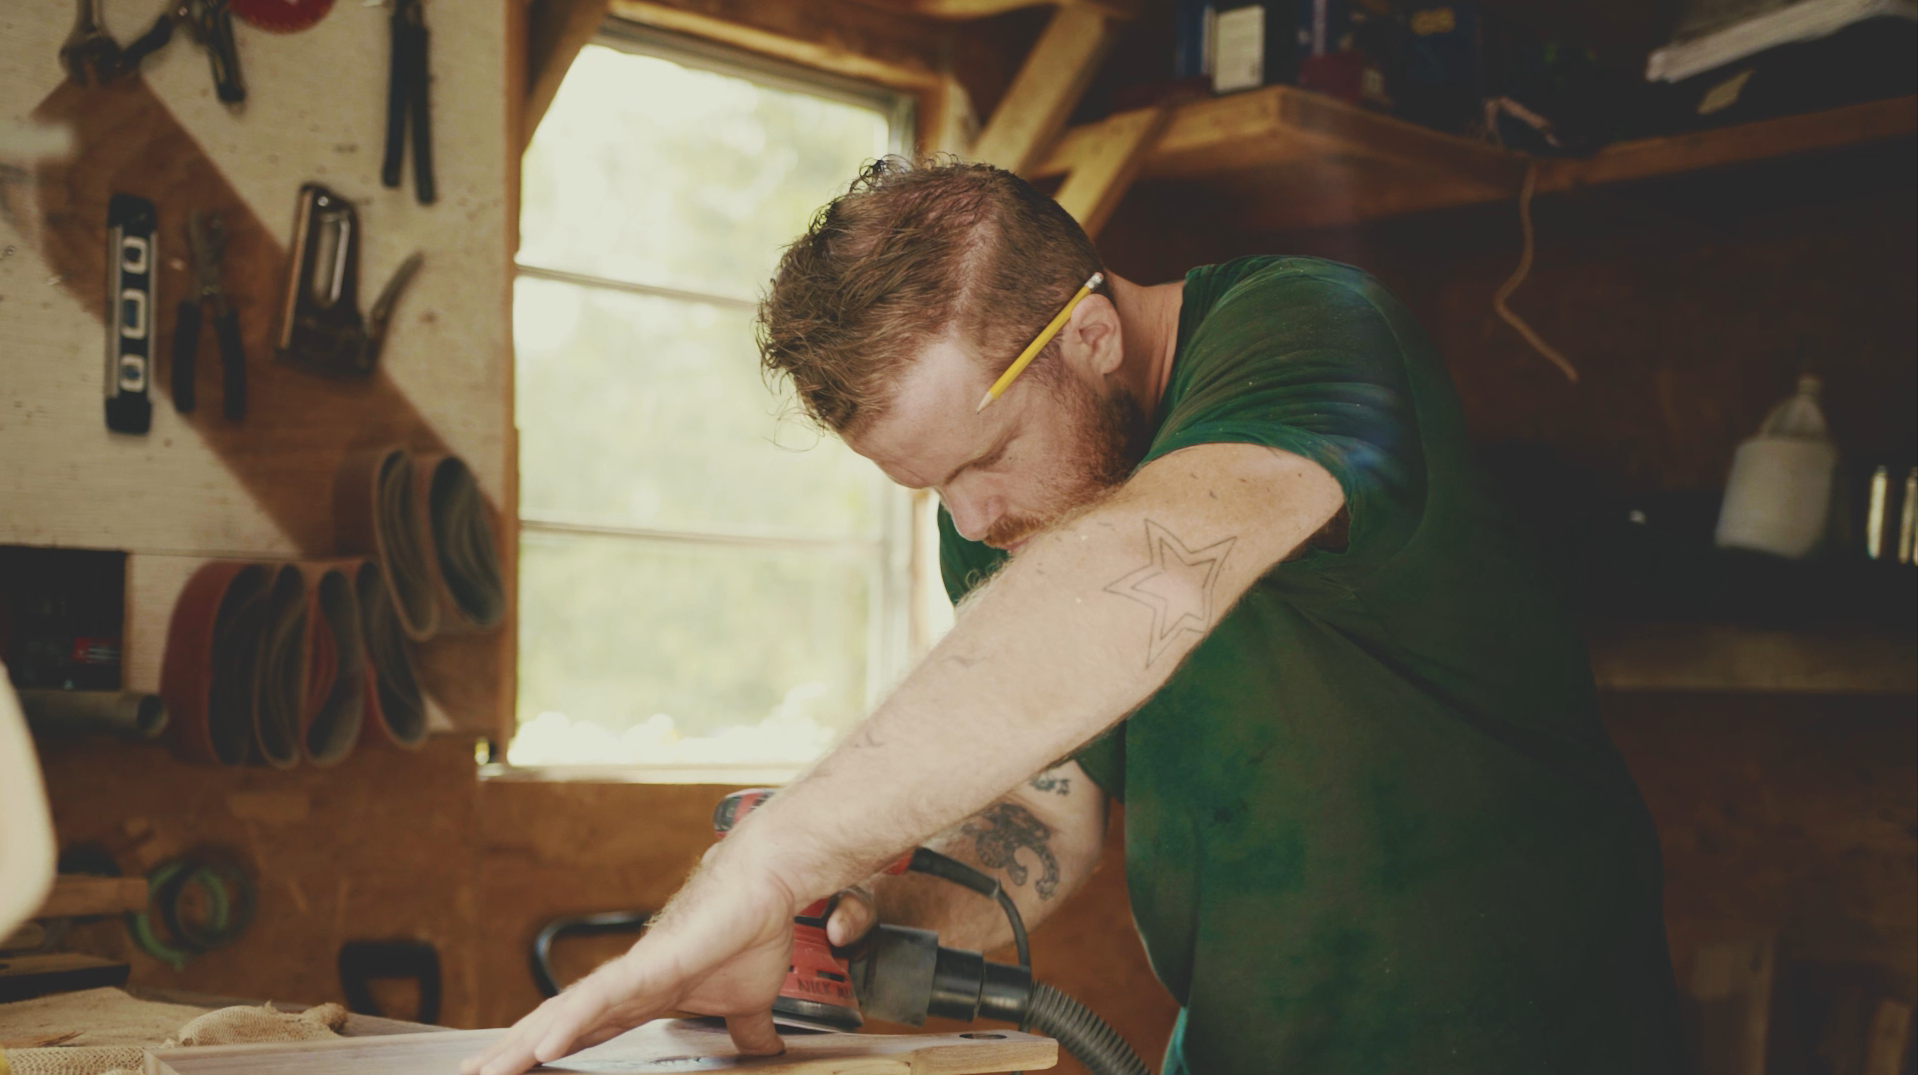 Makers of Kingston - An award-winning campaign based on the stories of real artisans, craftspeople and makers from Kingston, Ontario.